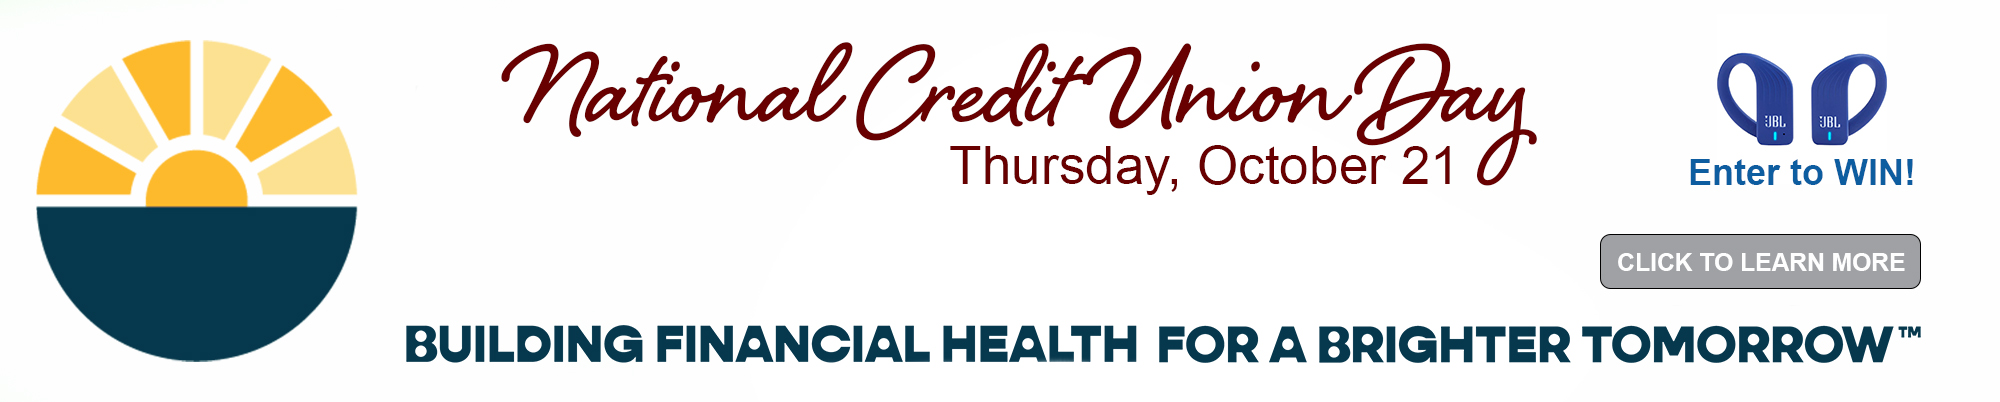 National Credit Union Day